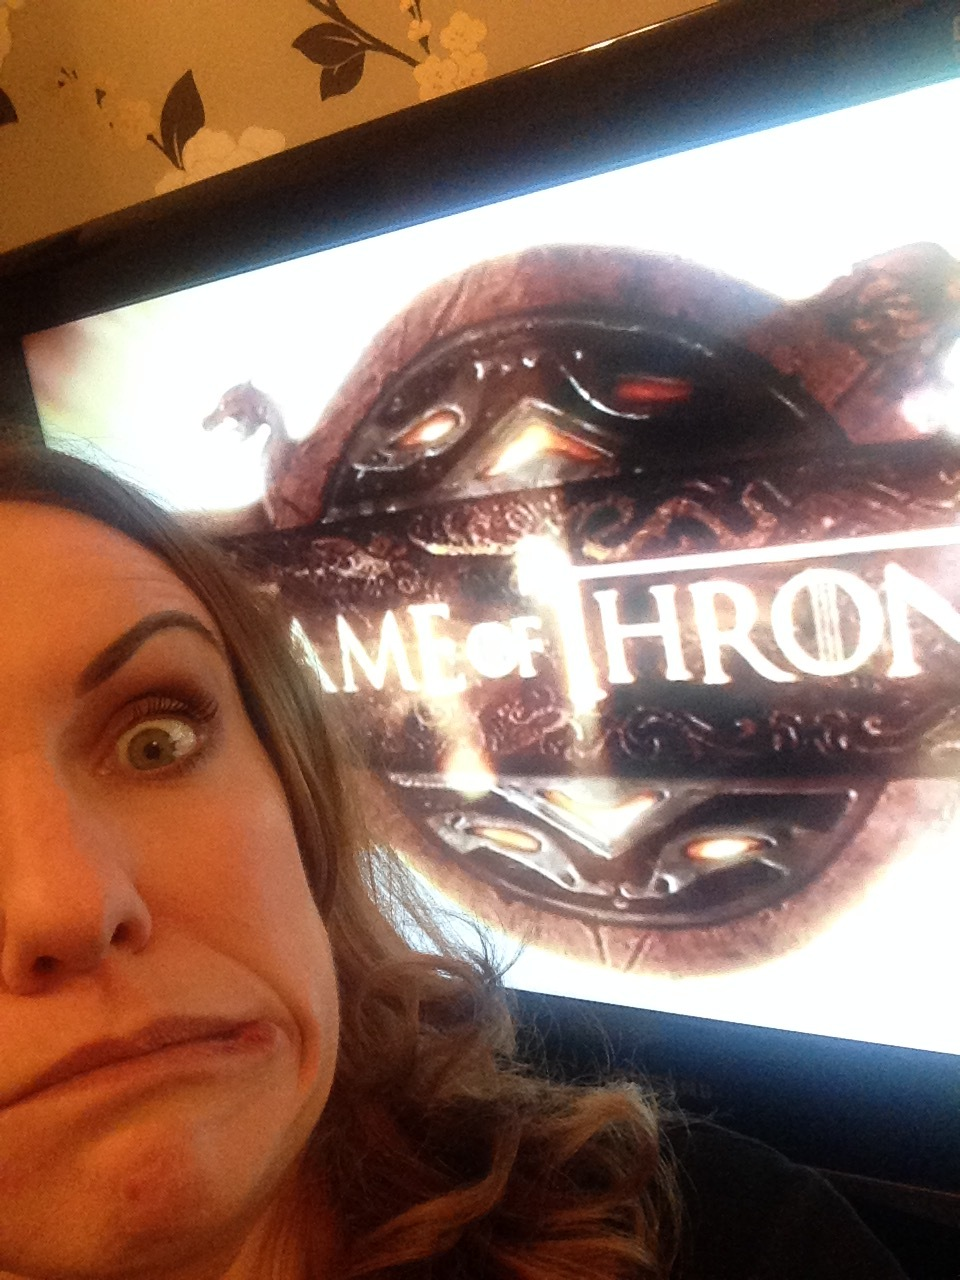 Game of Thrones. And yes, I did squat in front of my telly taking selfies to get this shot!